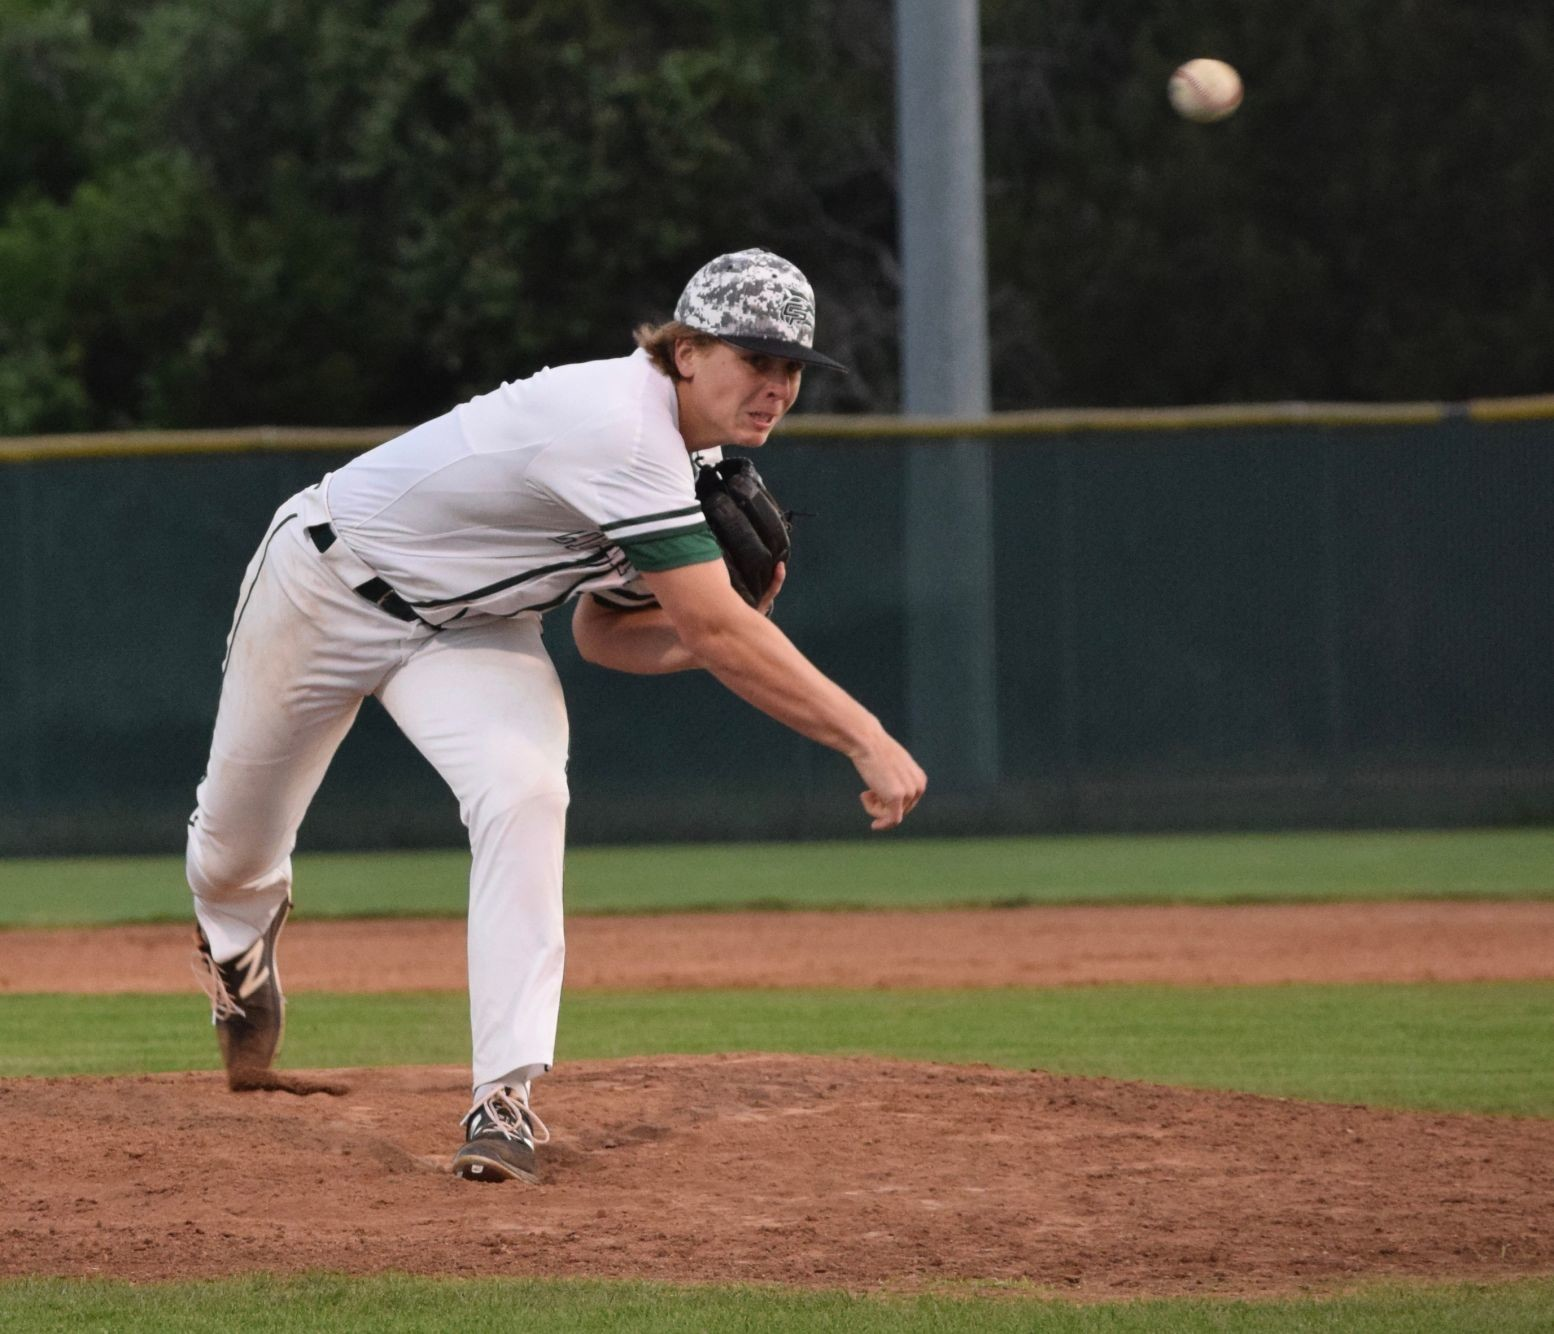 Cedar Park starting pitcher Mak Sexton threw 6.2 innings en route to a 3-1 win at home against Georgetown Tuesday night.